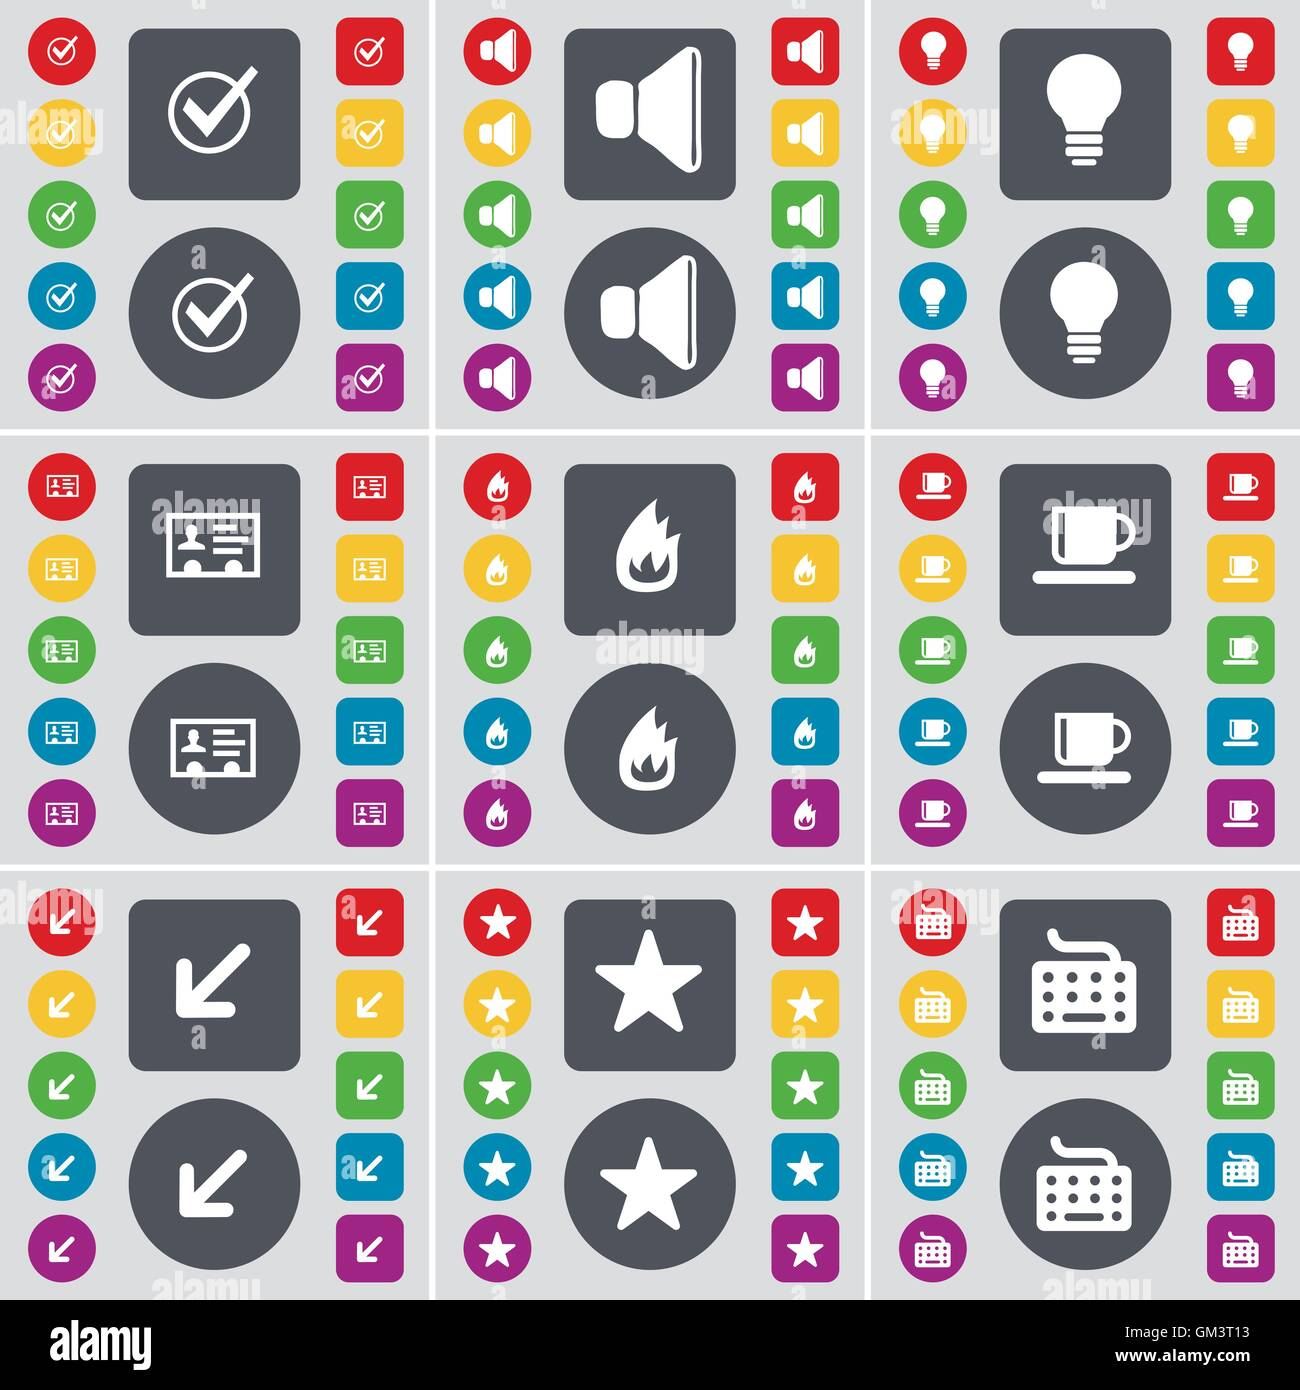 Tick sound light bulb contact fire cup deploying screen tick sound light bulb contact fire cup deploying screen star keyboard icon symbol a large set of flat colored buttons biocorpaavc